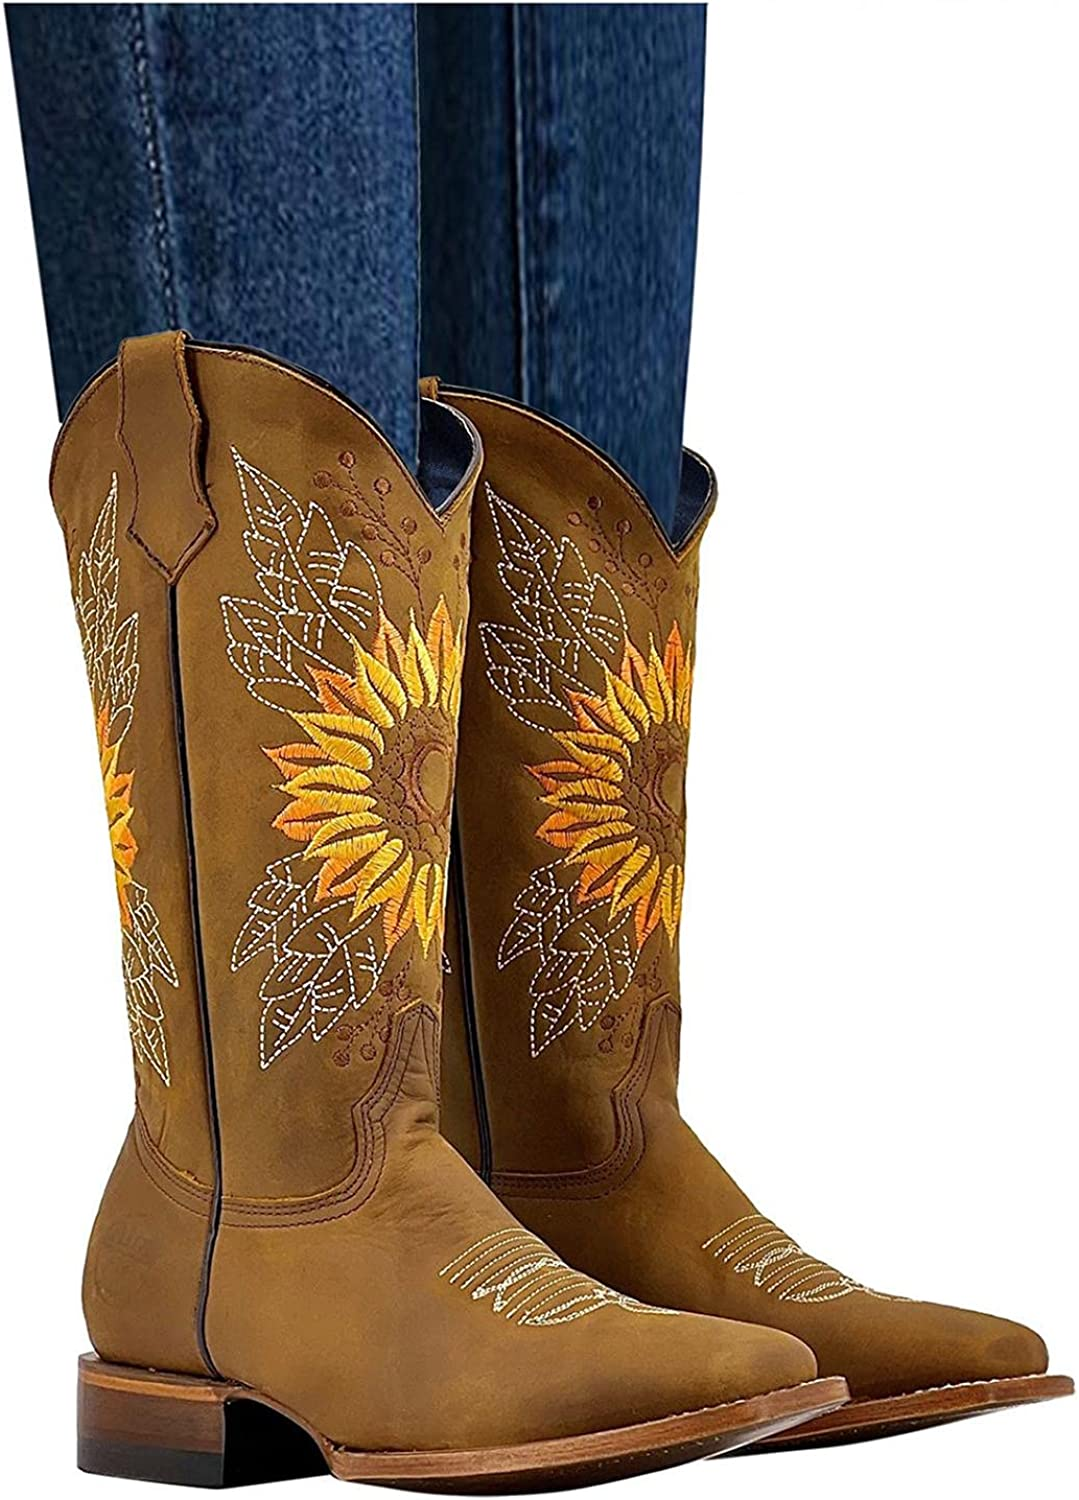 AIHOU Ankle Boots for Women Slip On Floral Embroidered Platform